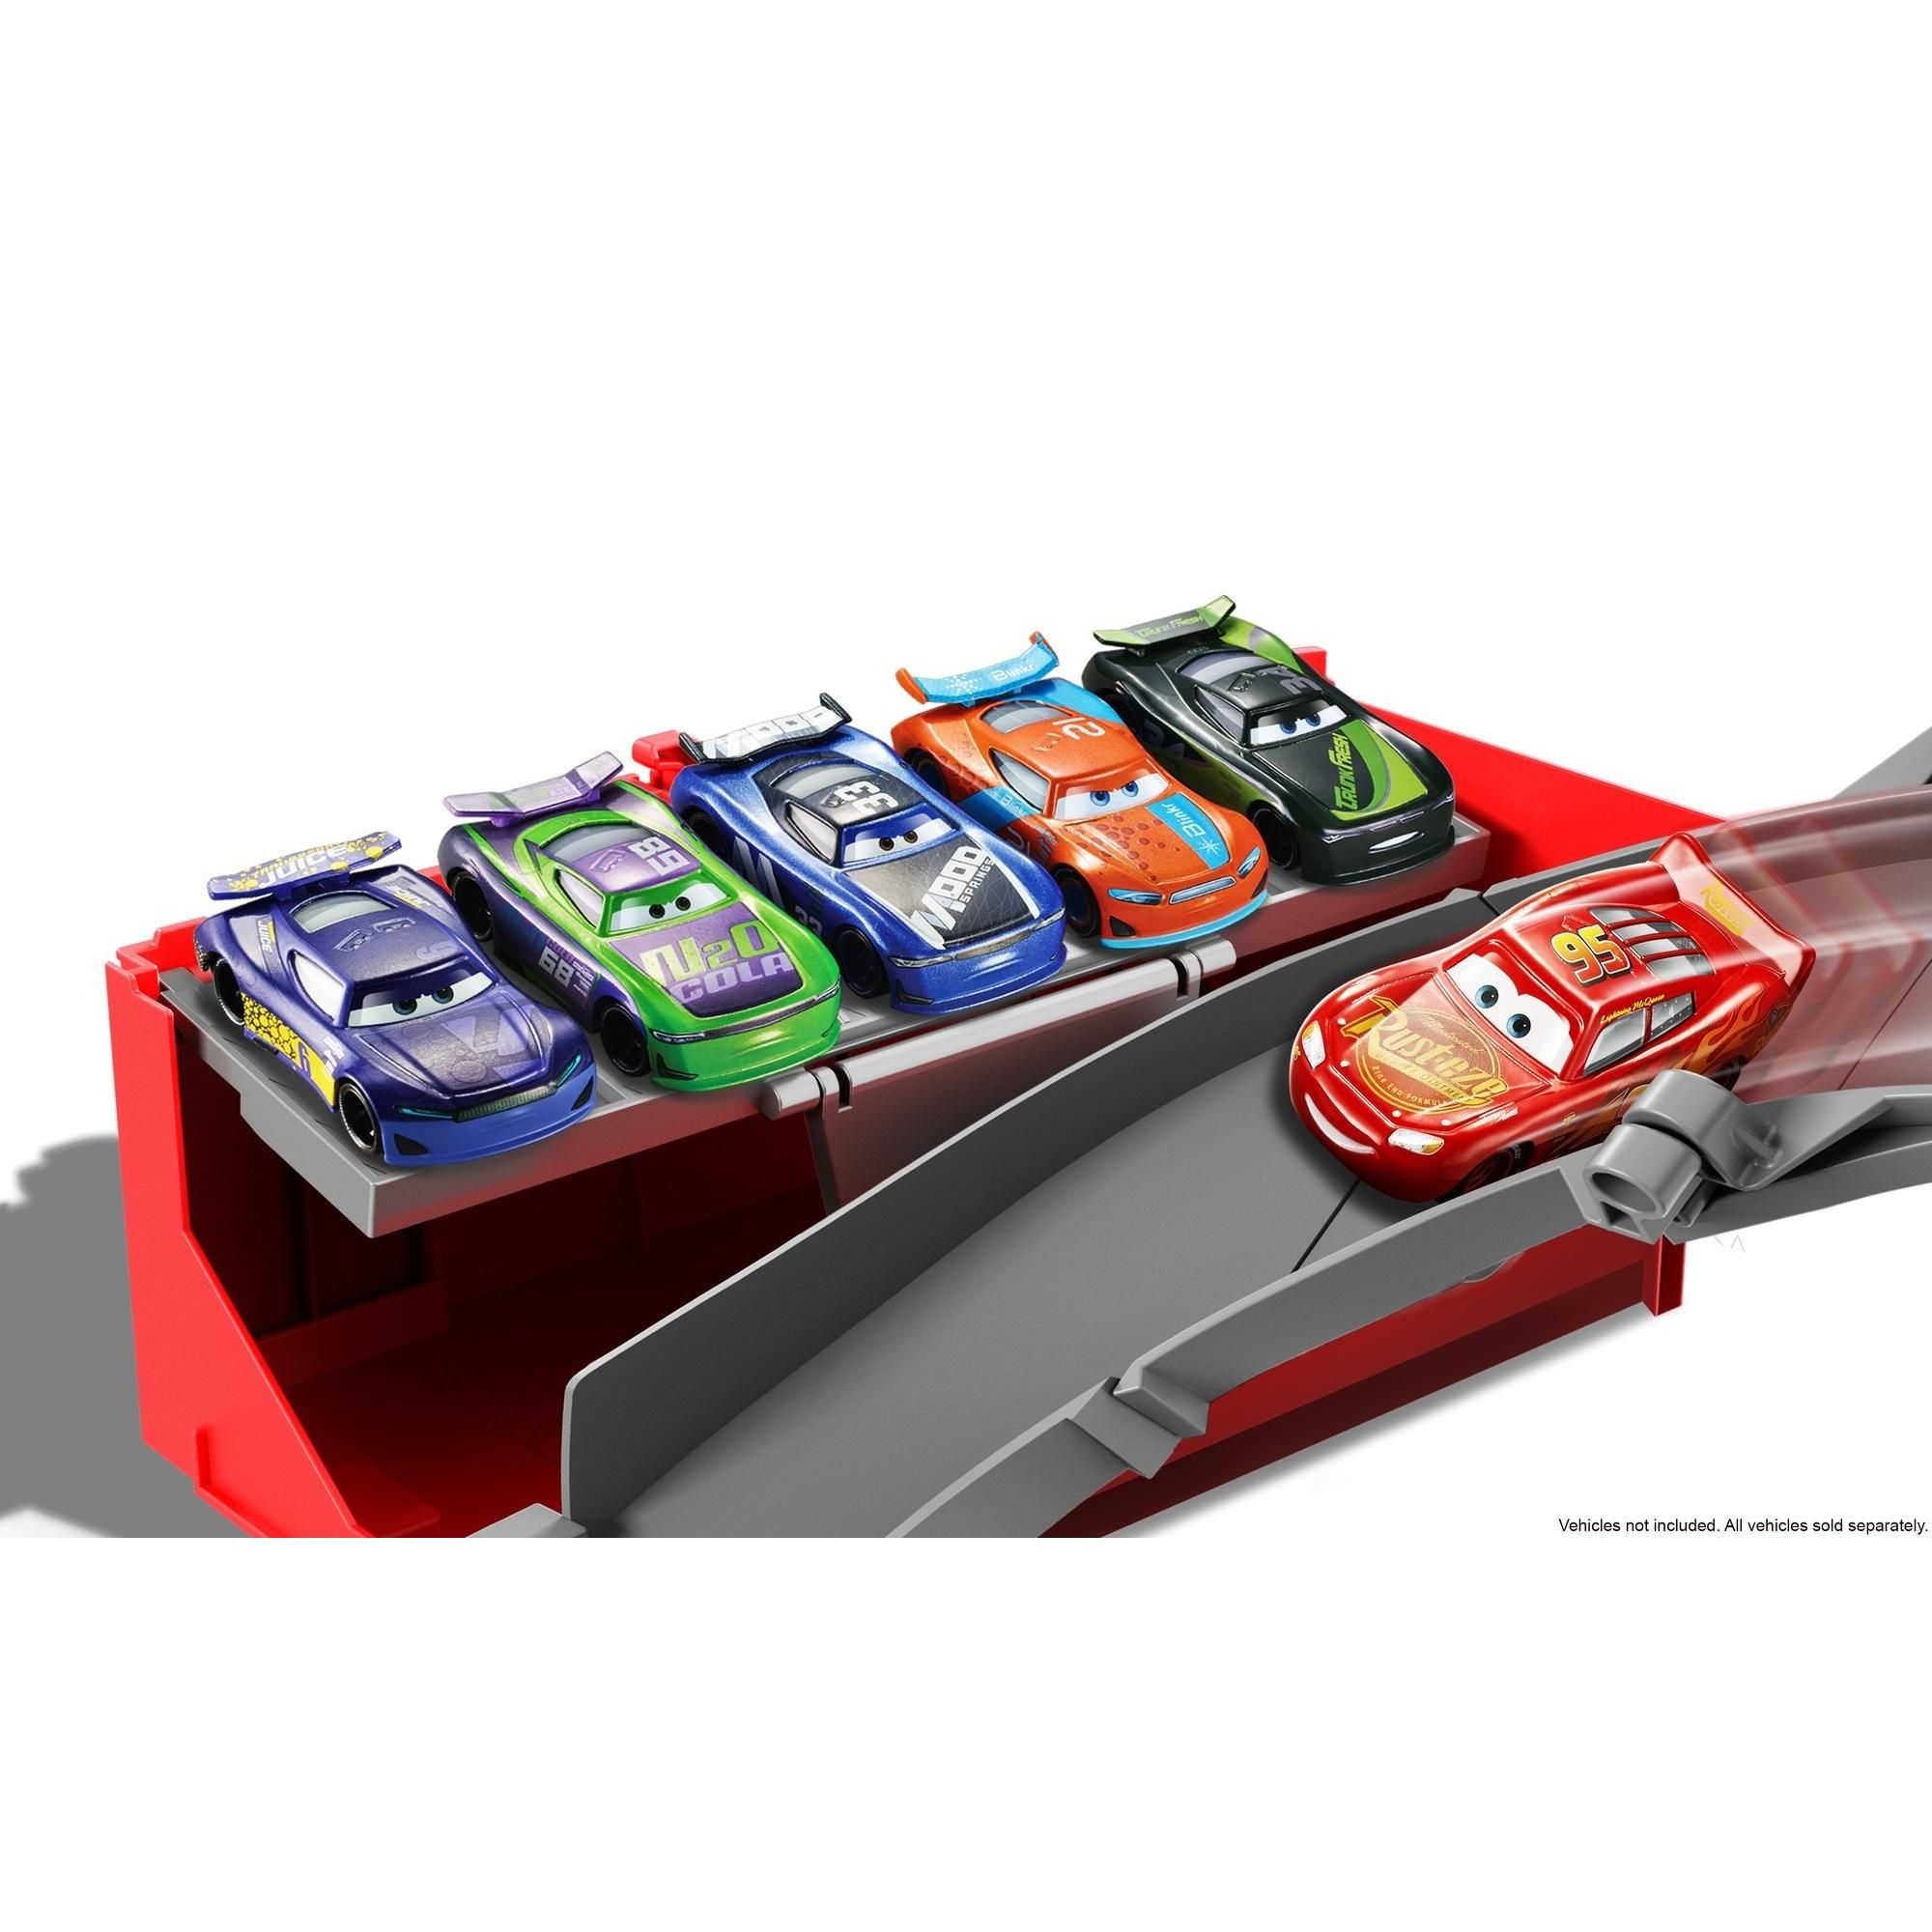 Disney Pixar Cars Super Track Mack Playset 2 In 1 Transforming Truck And Racetrack Super Track Cars Pixar Cars Disney Pixar Cars Disney Pixar